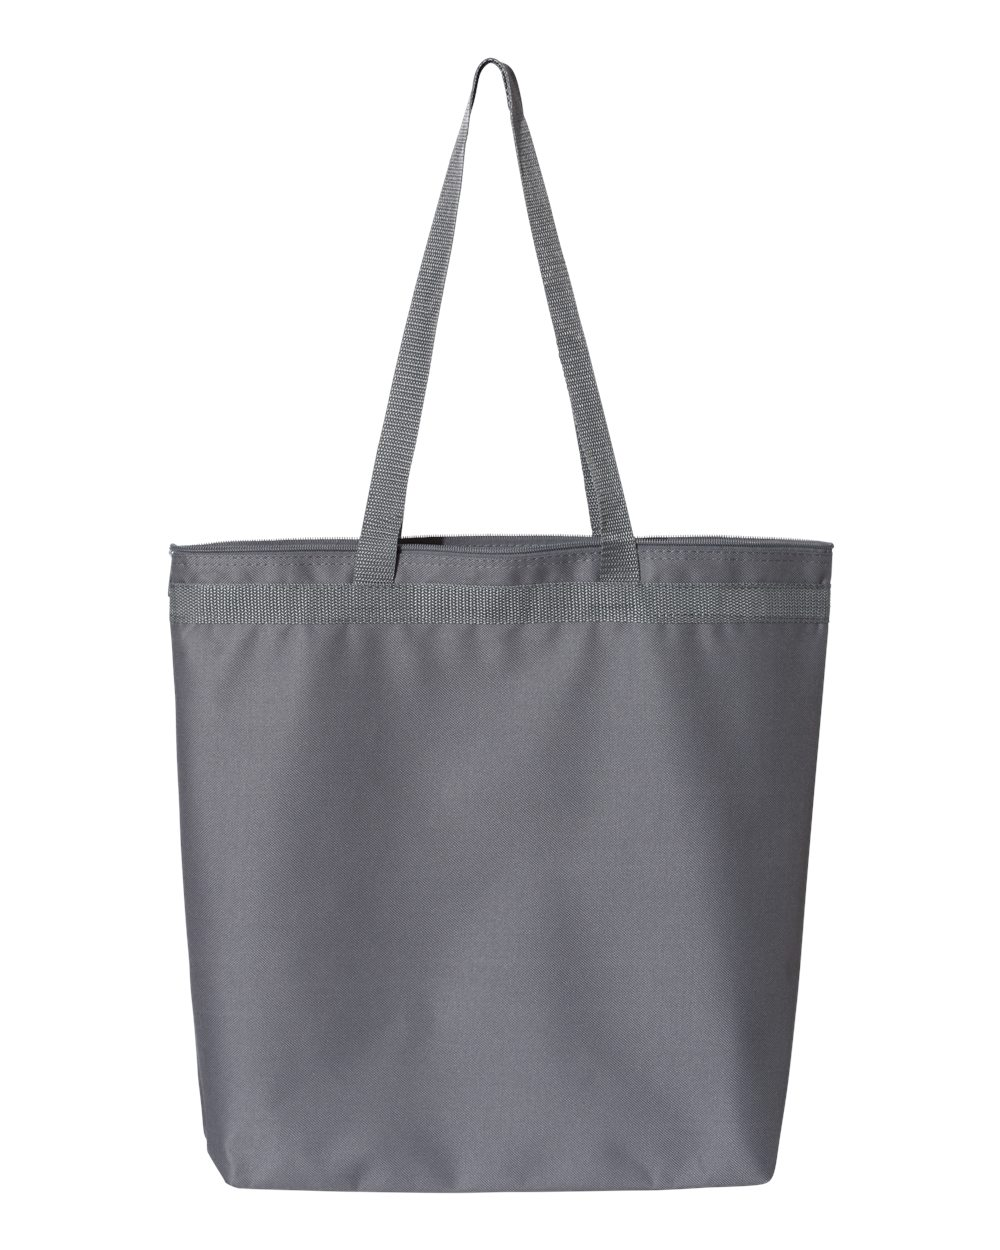 """18/"""" x 16/"""" x 4 1//2/"""" Liberty Bags Recycled Zipper Tote Shopping Bag  8802 Size"""